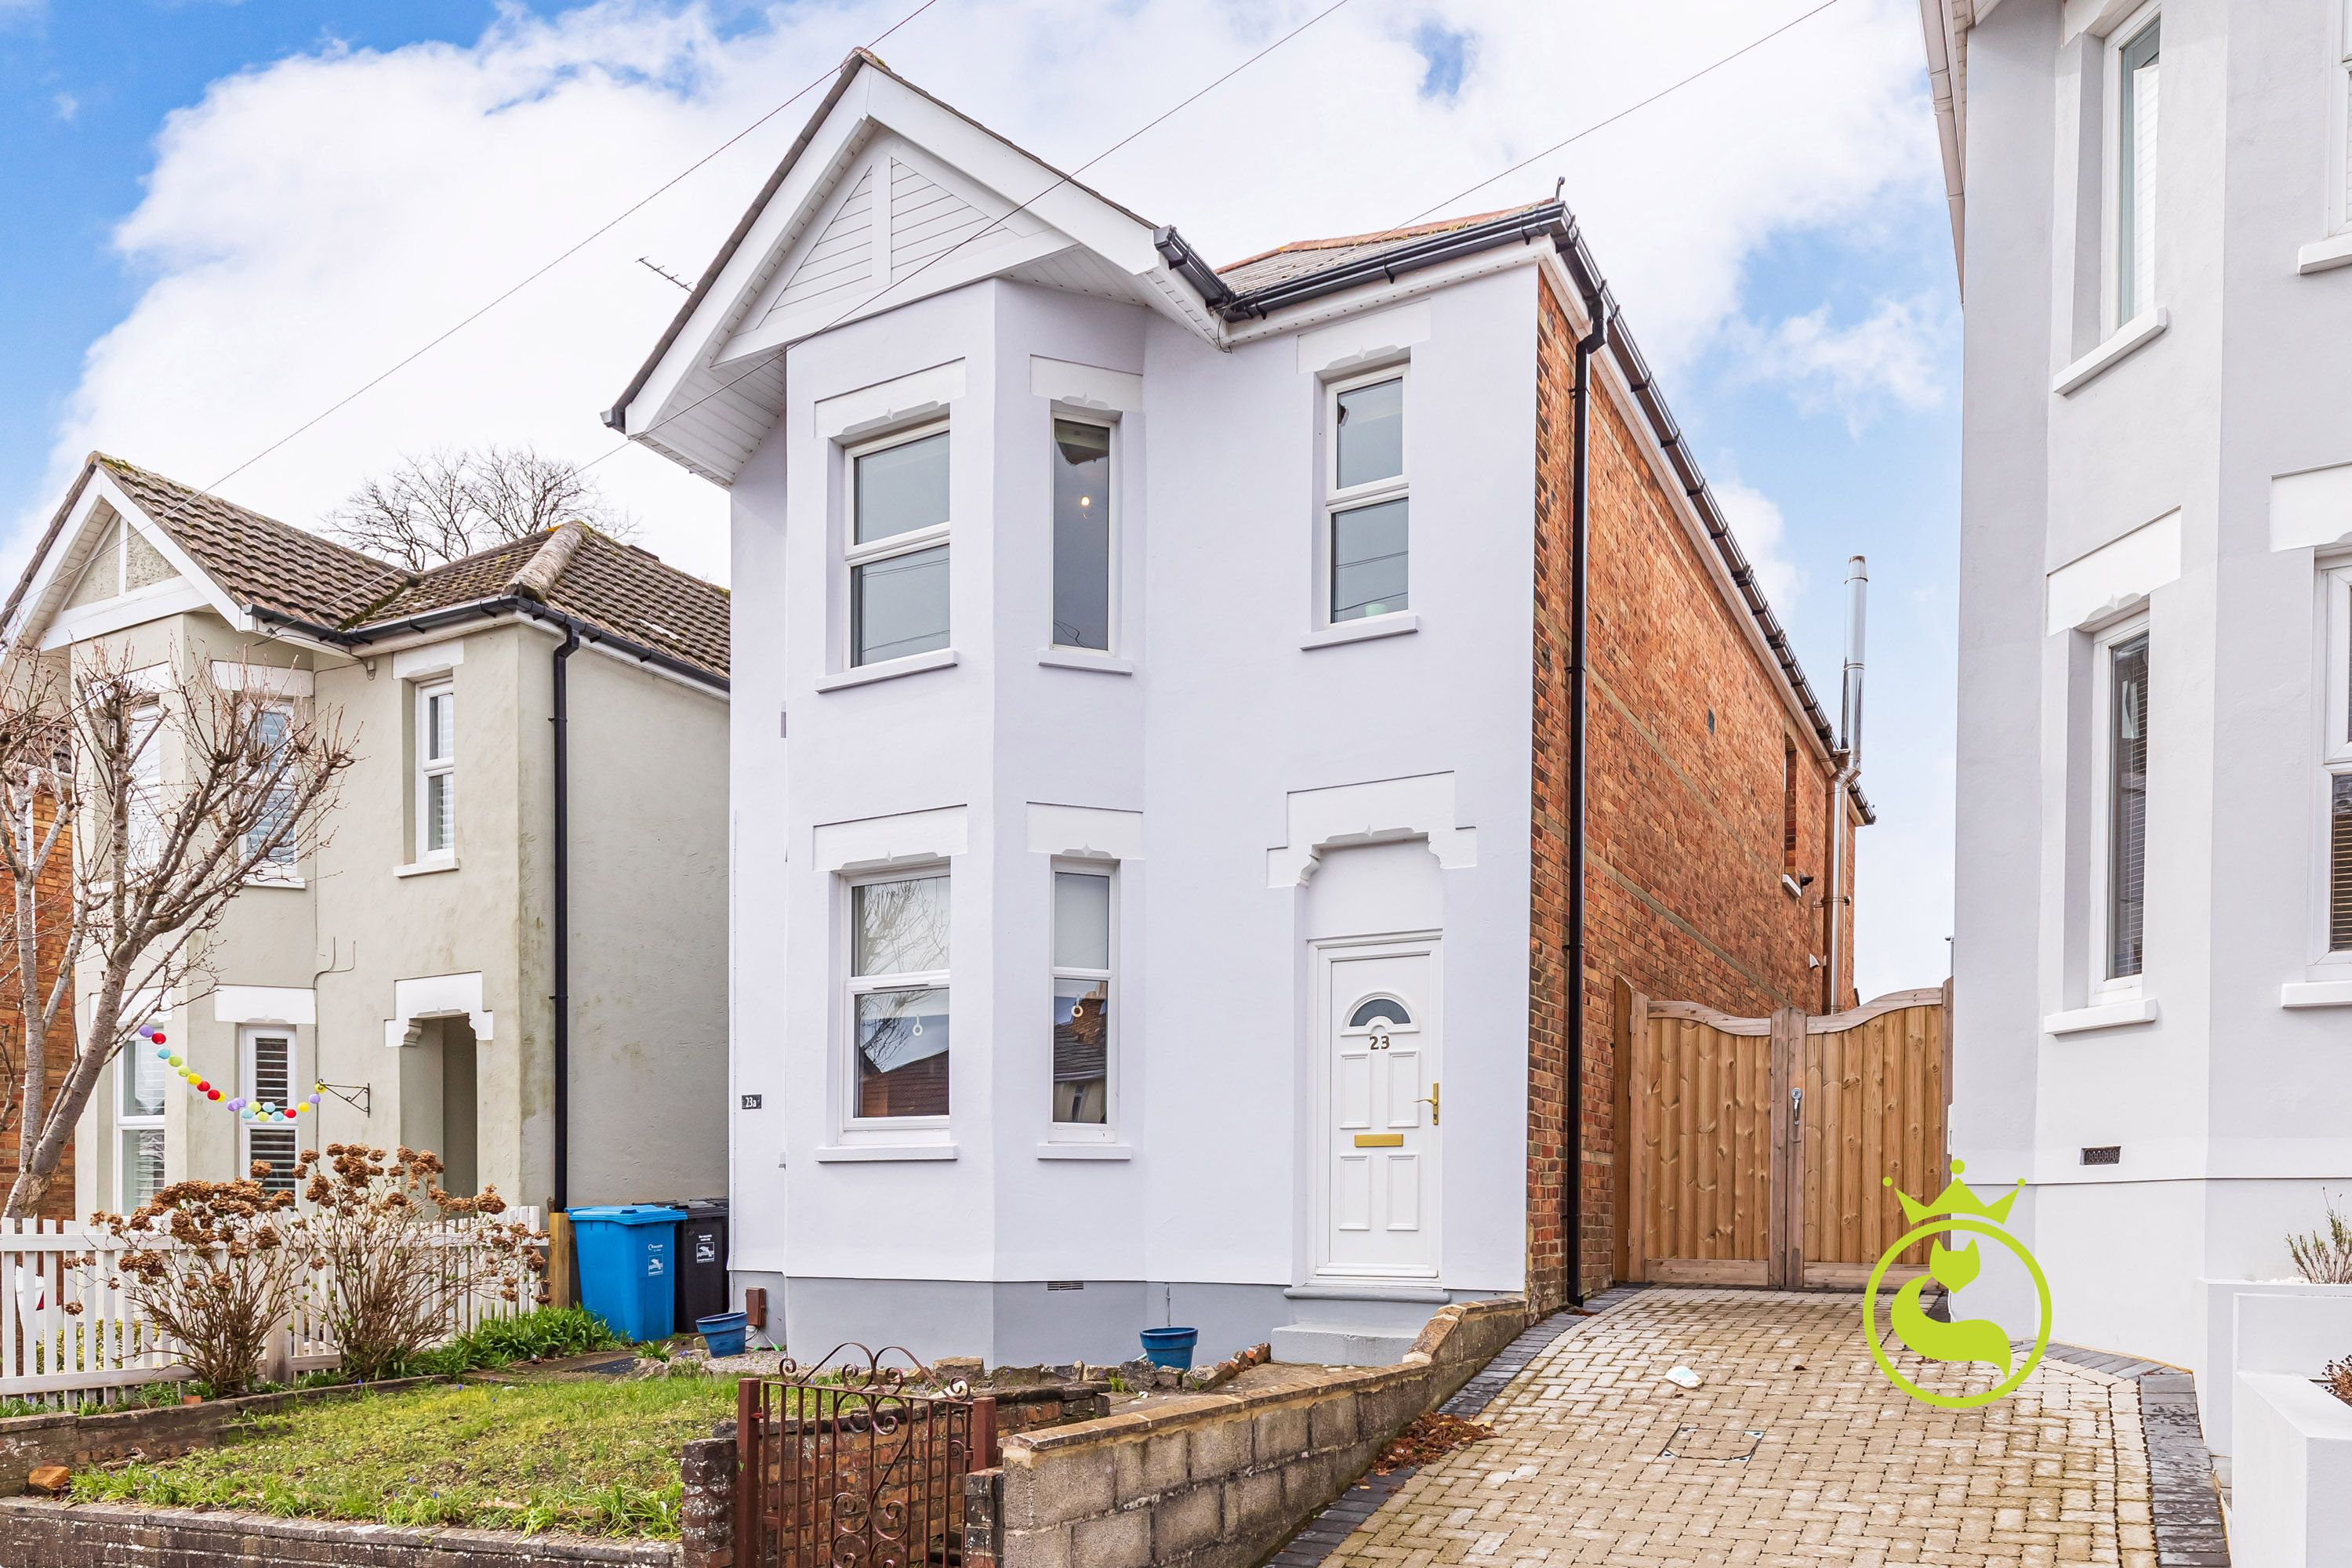 A well presented two bedroom first floor converted flat. Popular location near to local amenities and transport links.